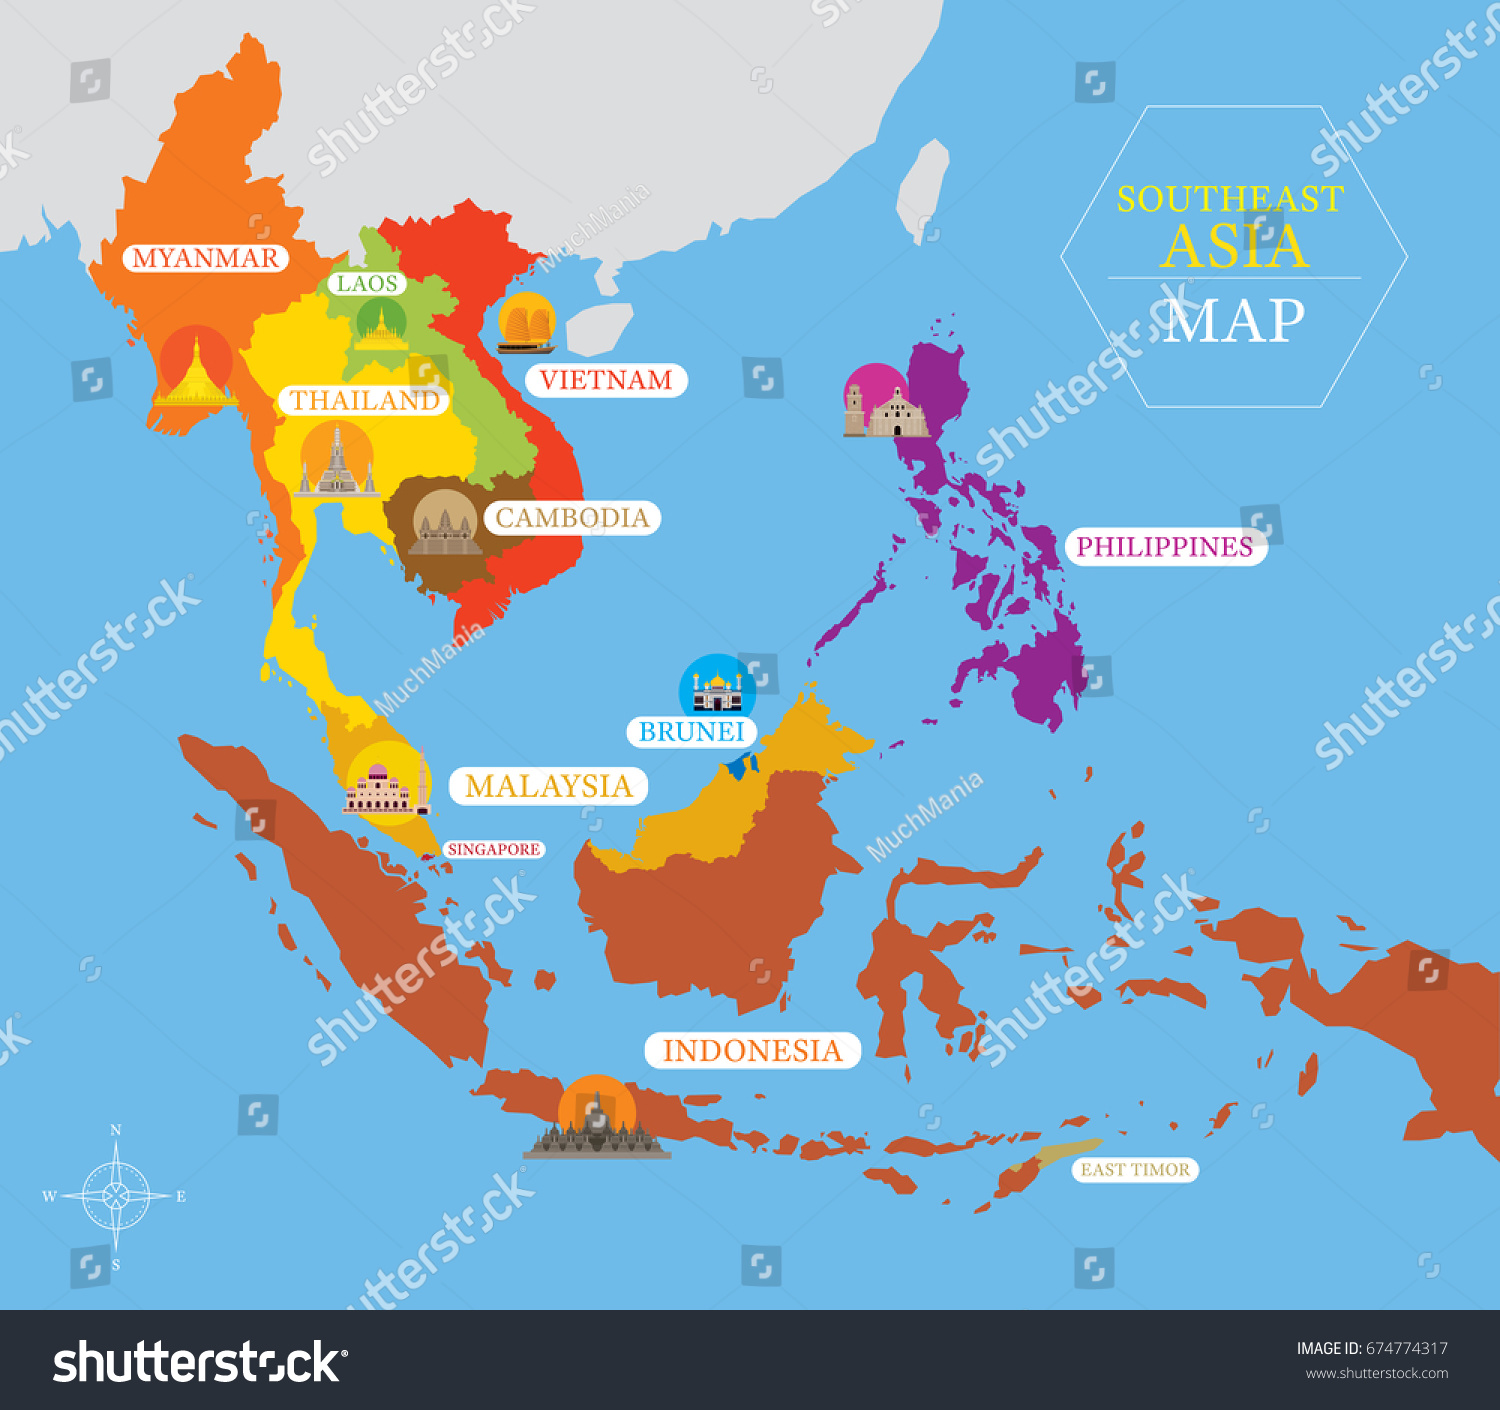 Southeast Asia Map Country Icons Location Stock Vector